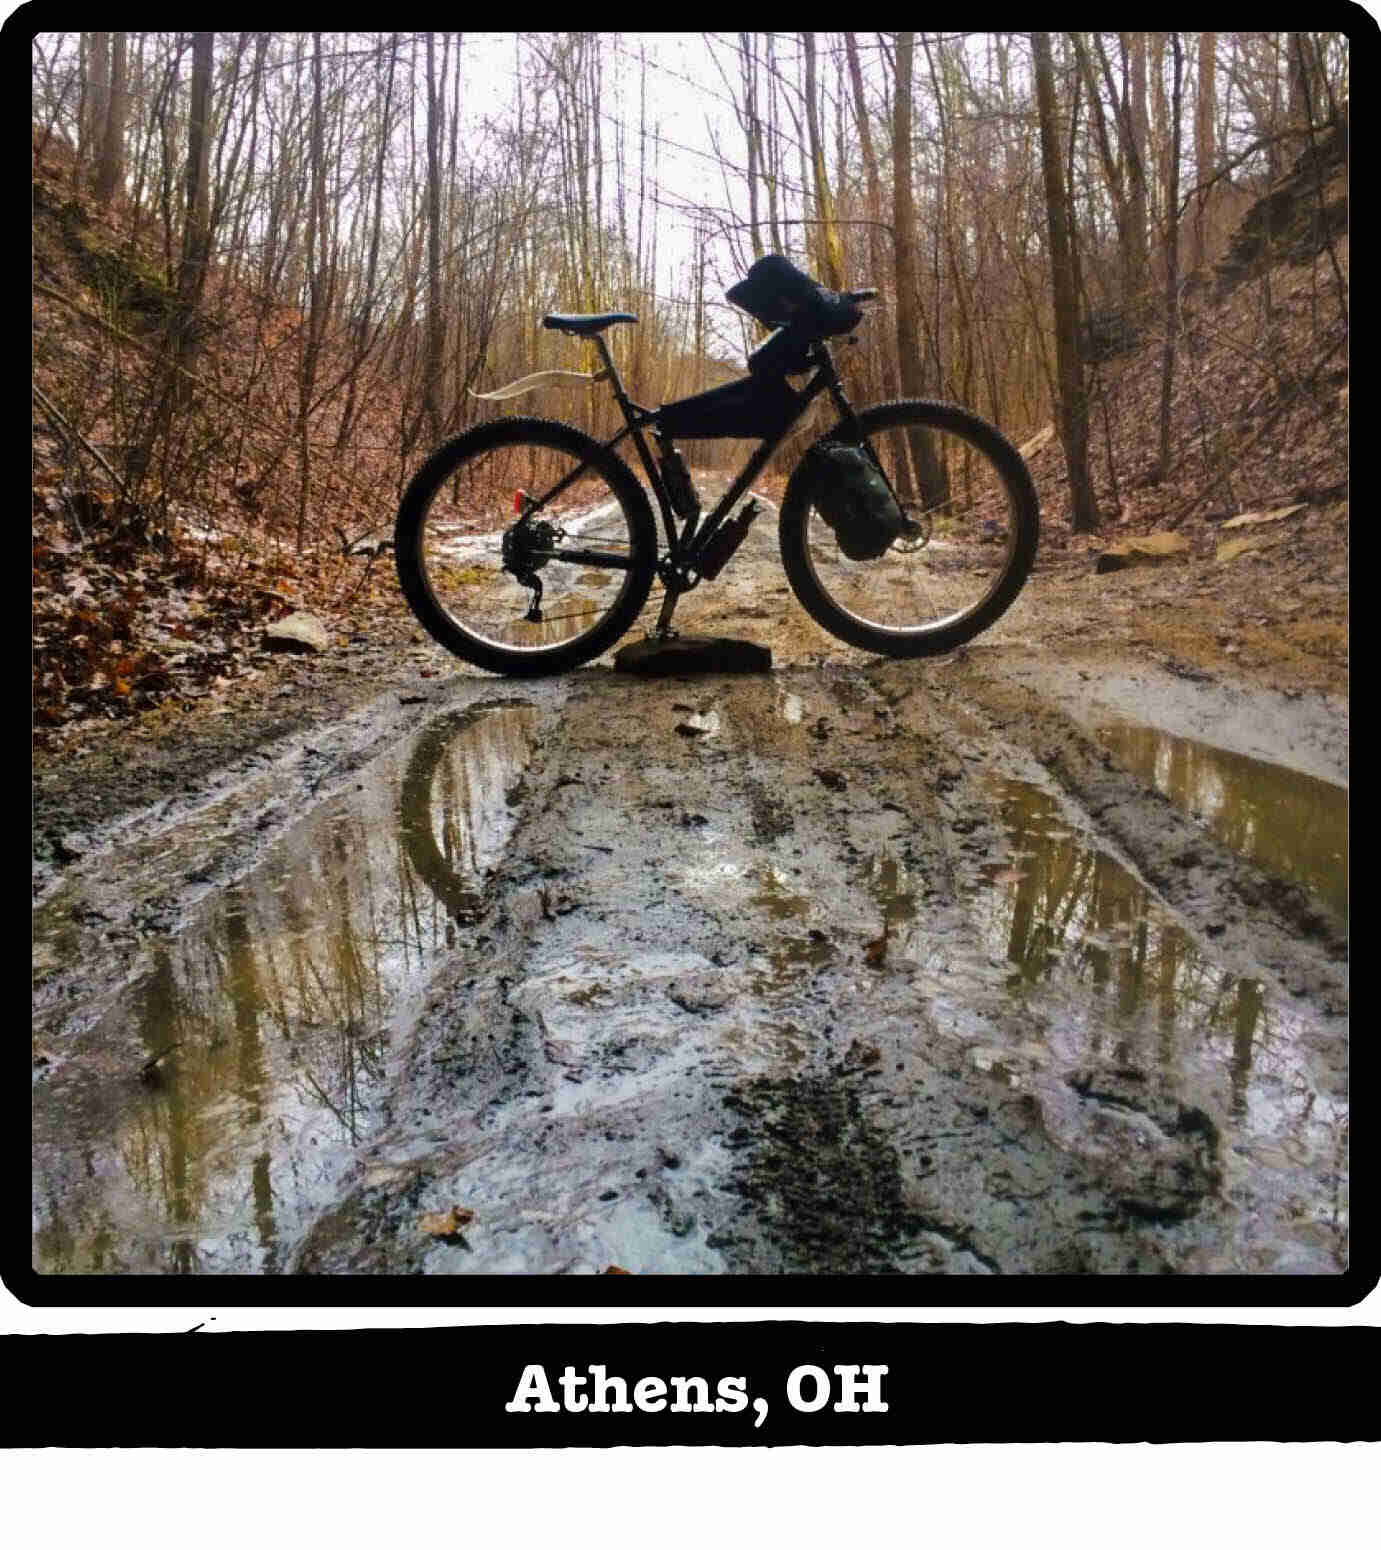 Right profile of a Surly ECR bike standing across a muddy trail in the woods - Athens, OH tag below image